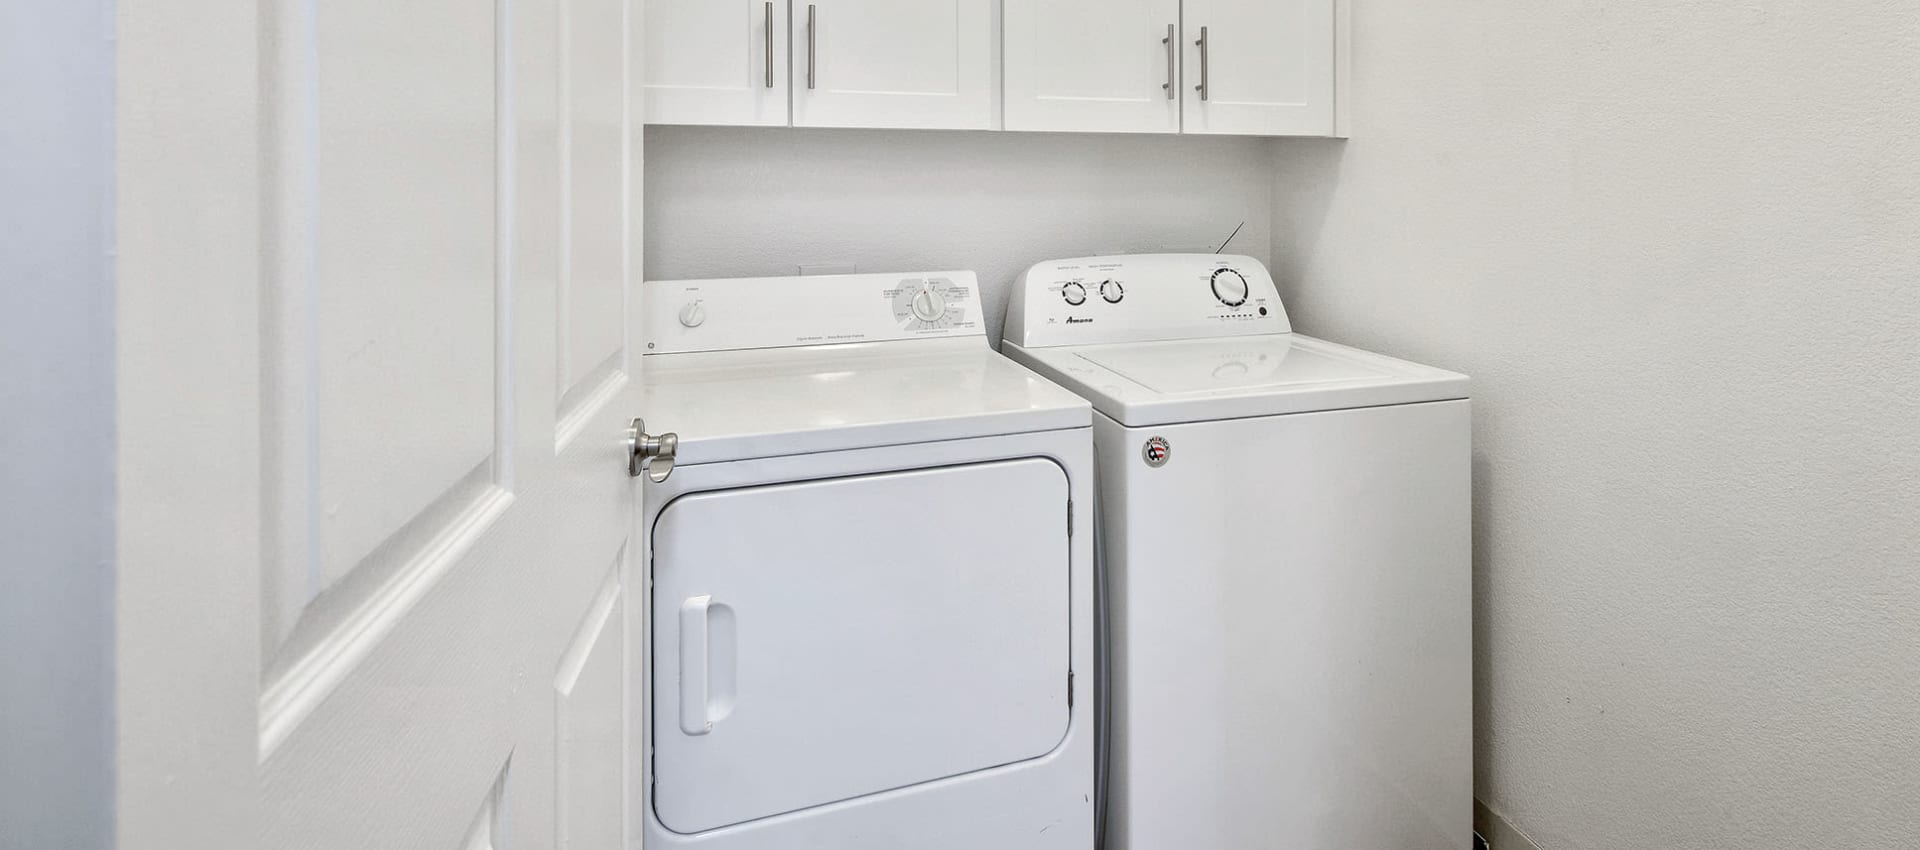 In-Unit Washer and Dryer at Rosewalk at San Jose